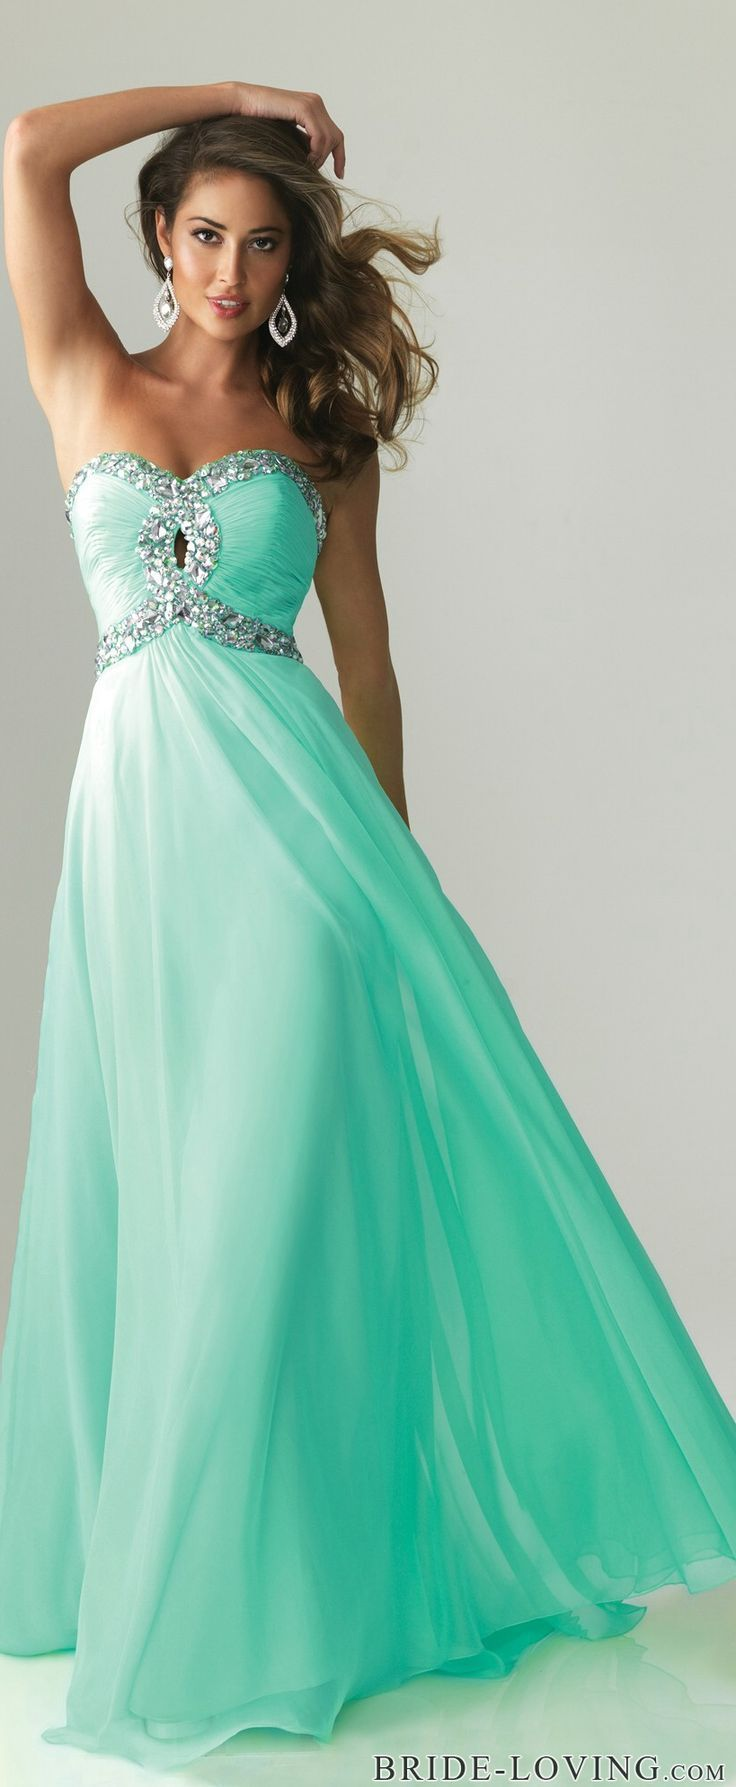 goodliness Occasion Maternity Bridesmaid 2017 Dresses special 2018 ...